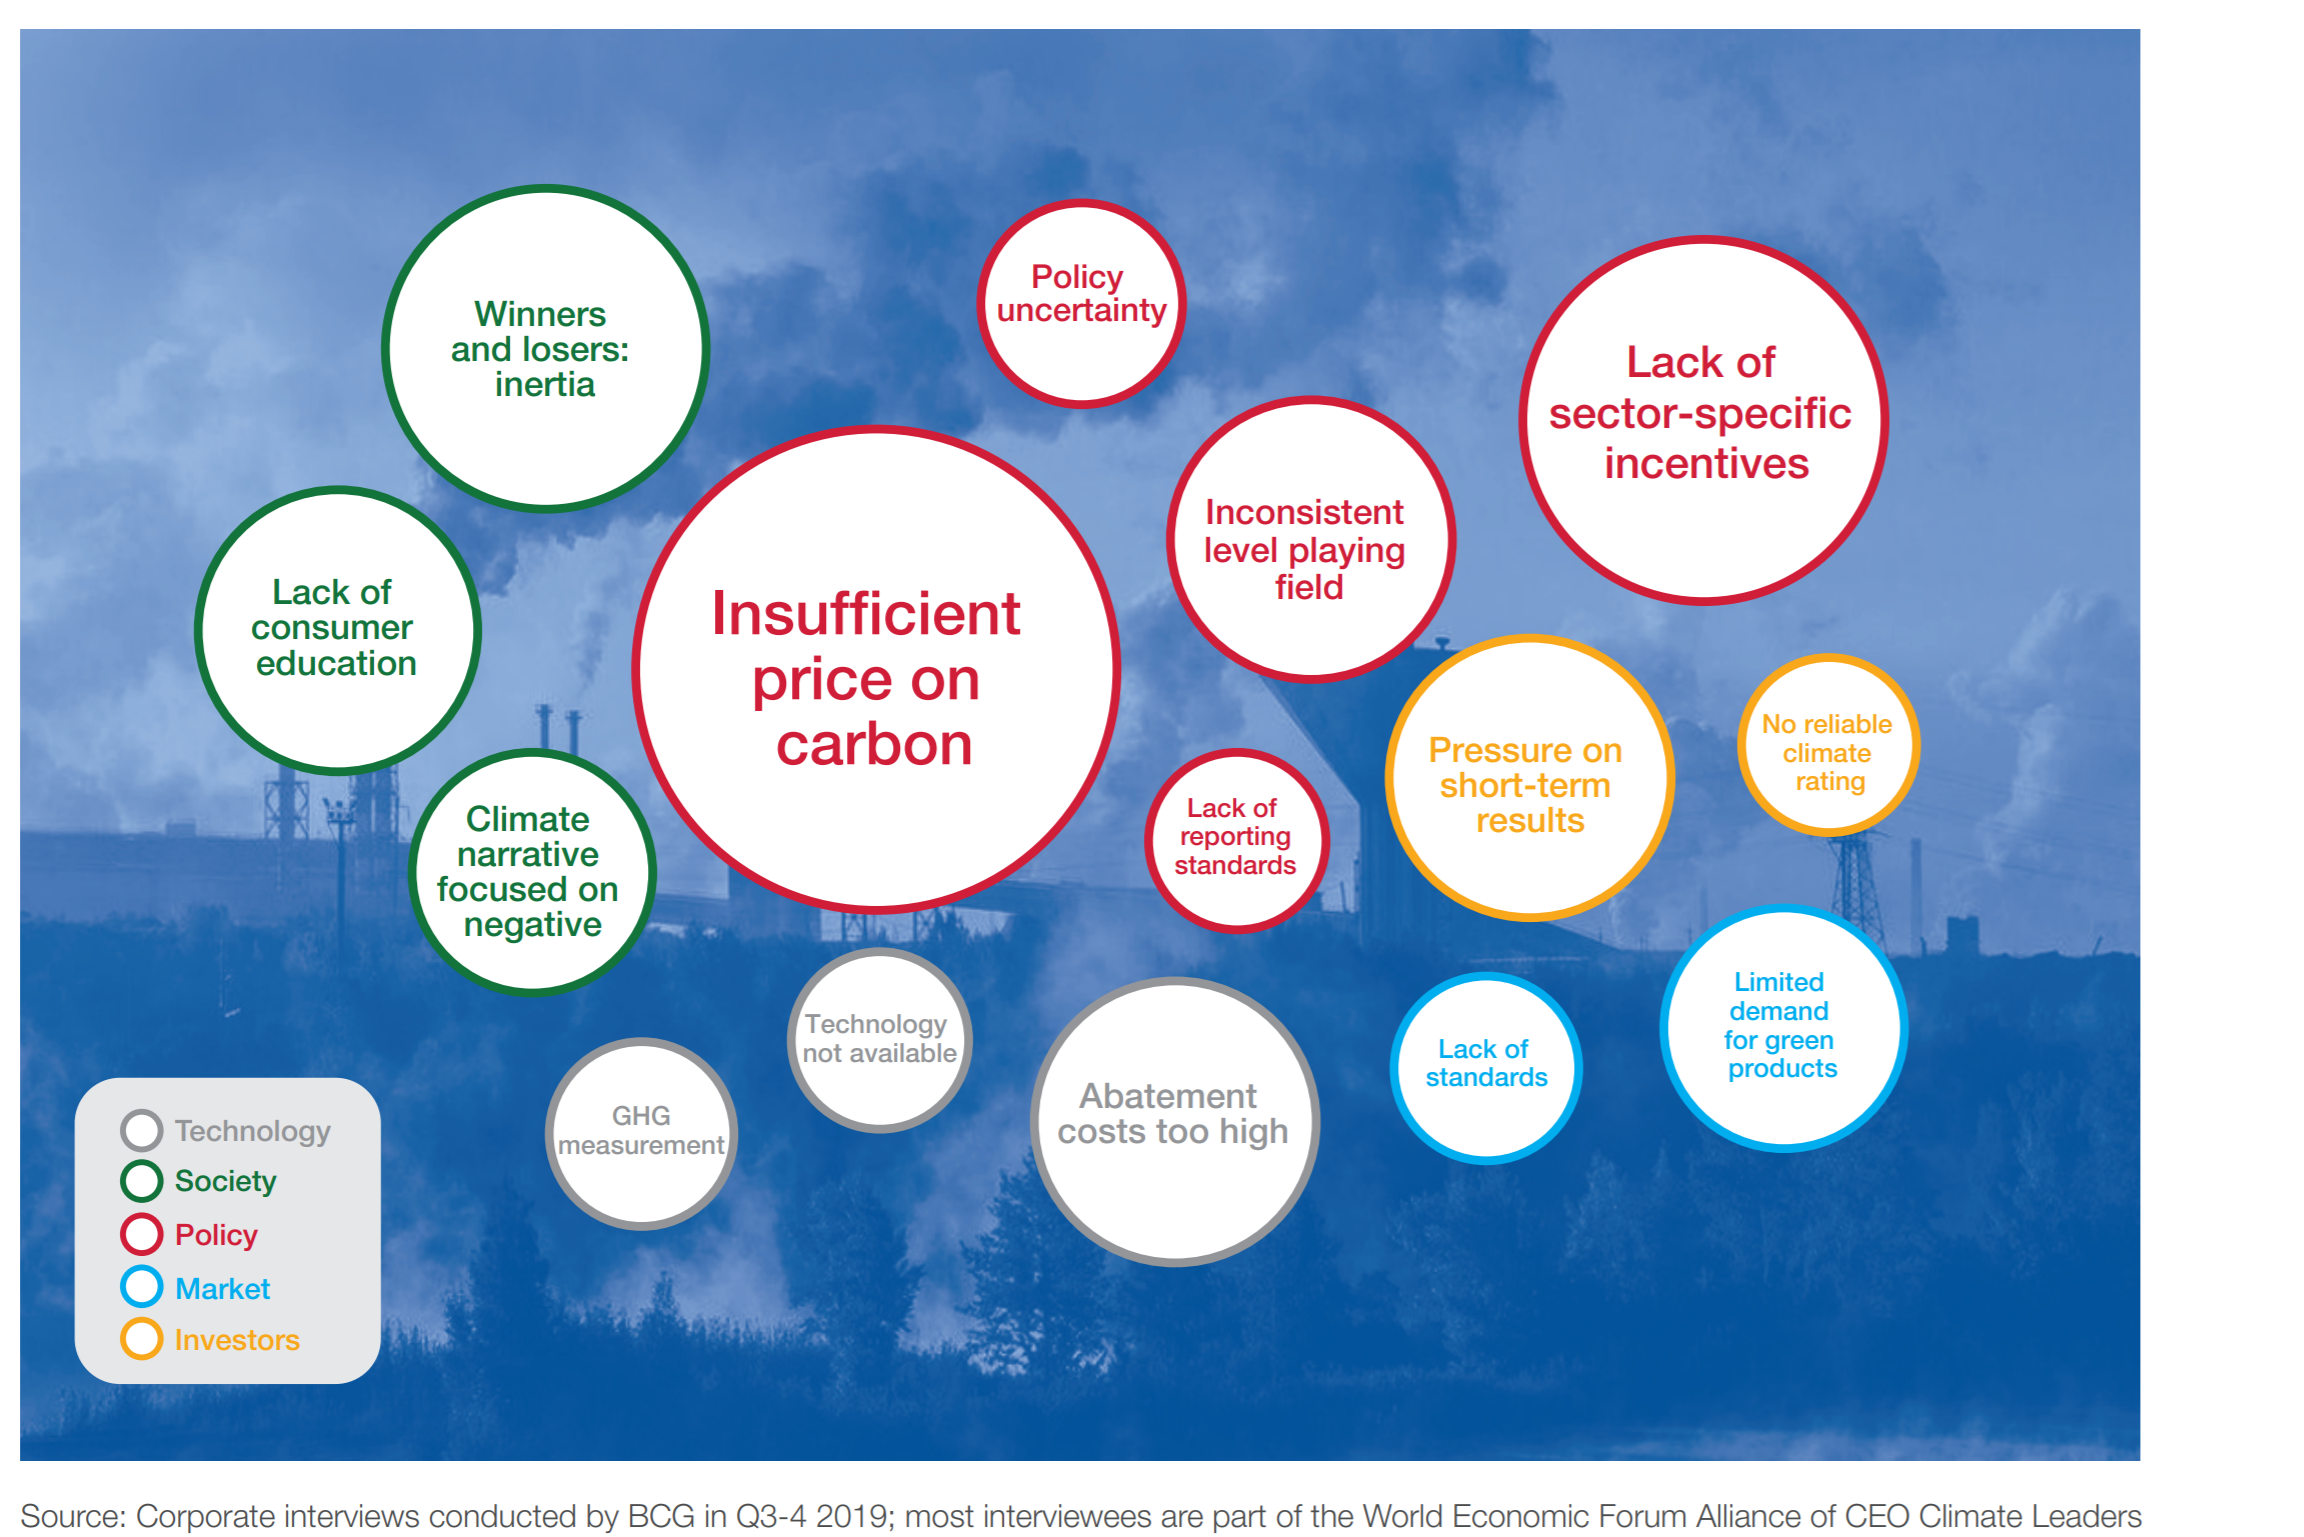 Significant barriers to broader and bolder corporate climate action